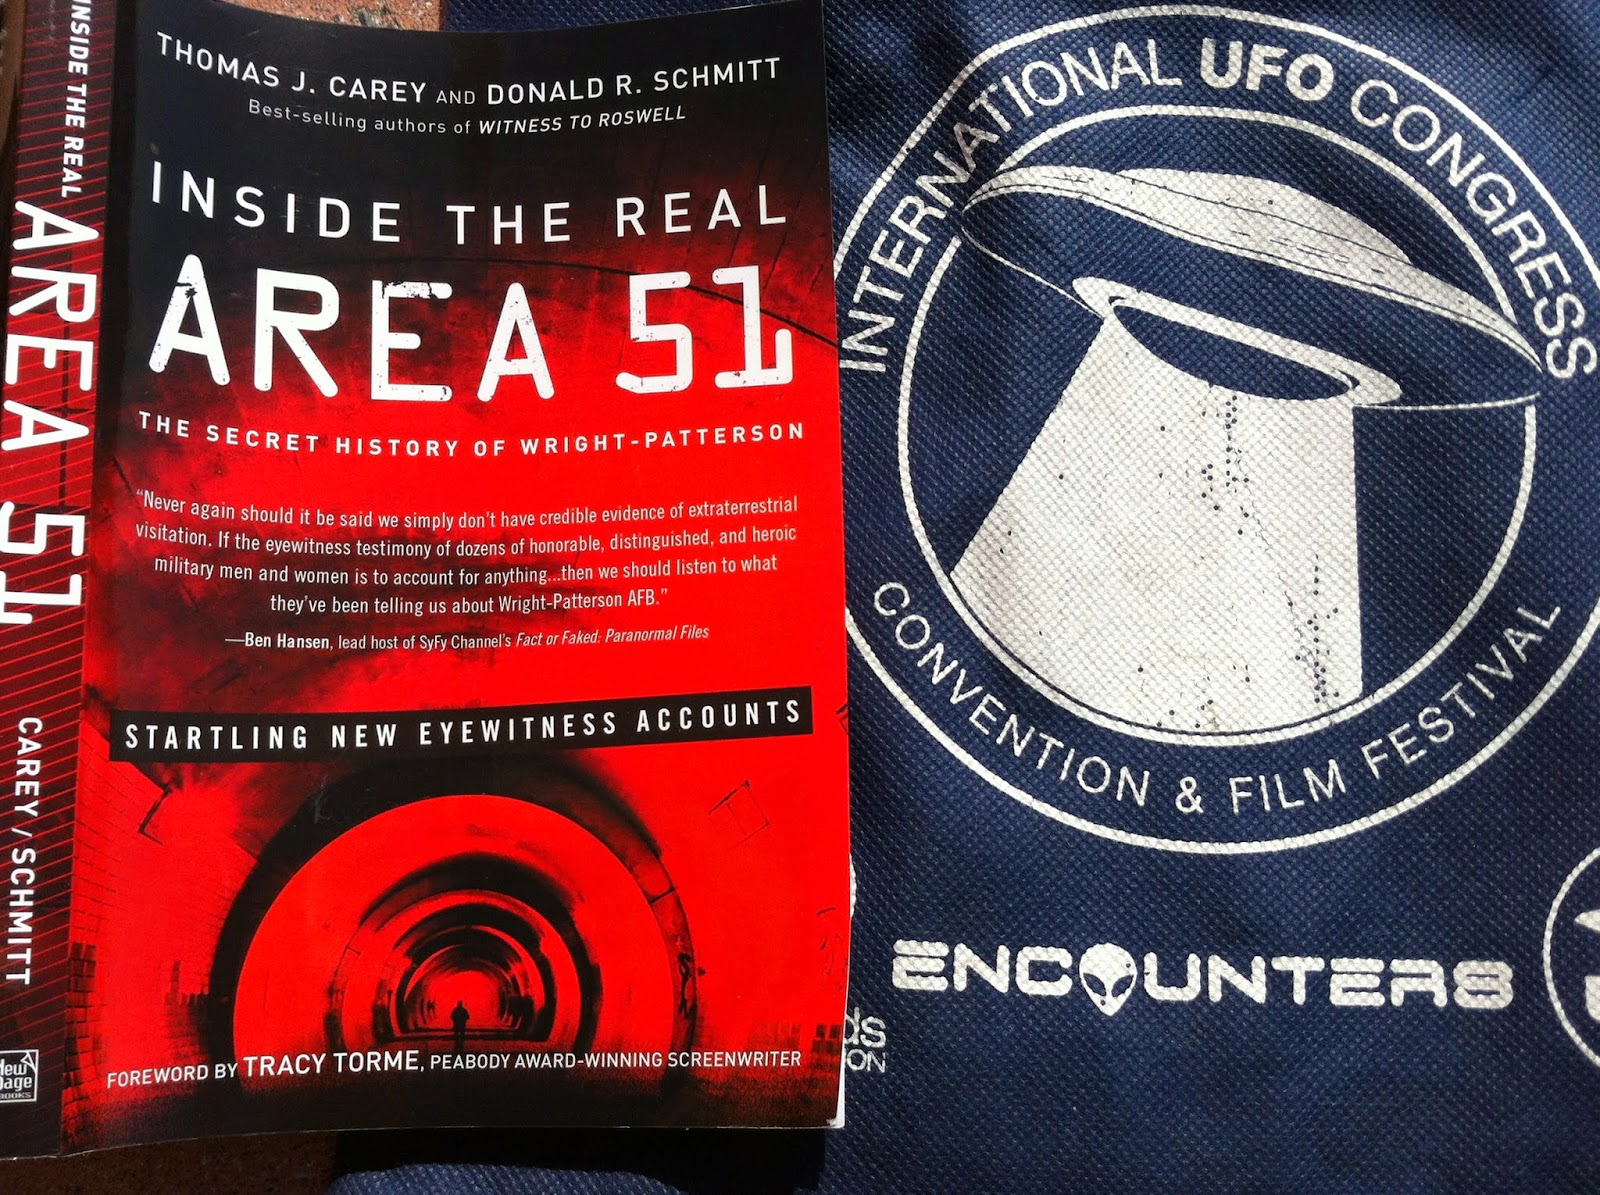 ufo thesis The roswell incident edward oæbrien march 13, 1997 cp-11 period 6 outline thesis: the roswell incident, which enlightened our minds to the capacity of excepting, has remained one of the most controversial issues issues today.